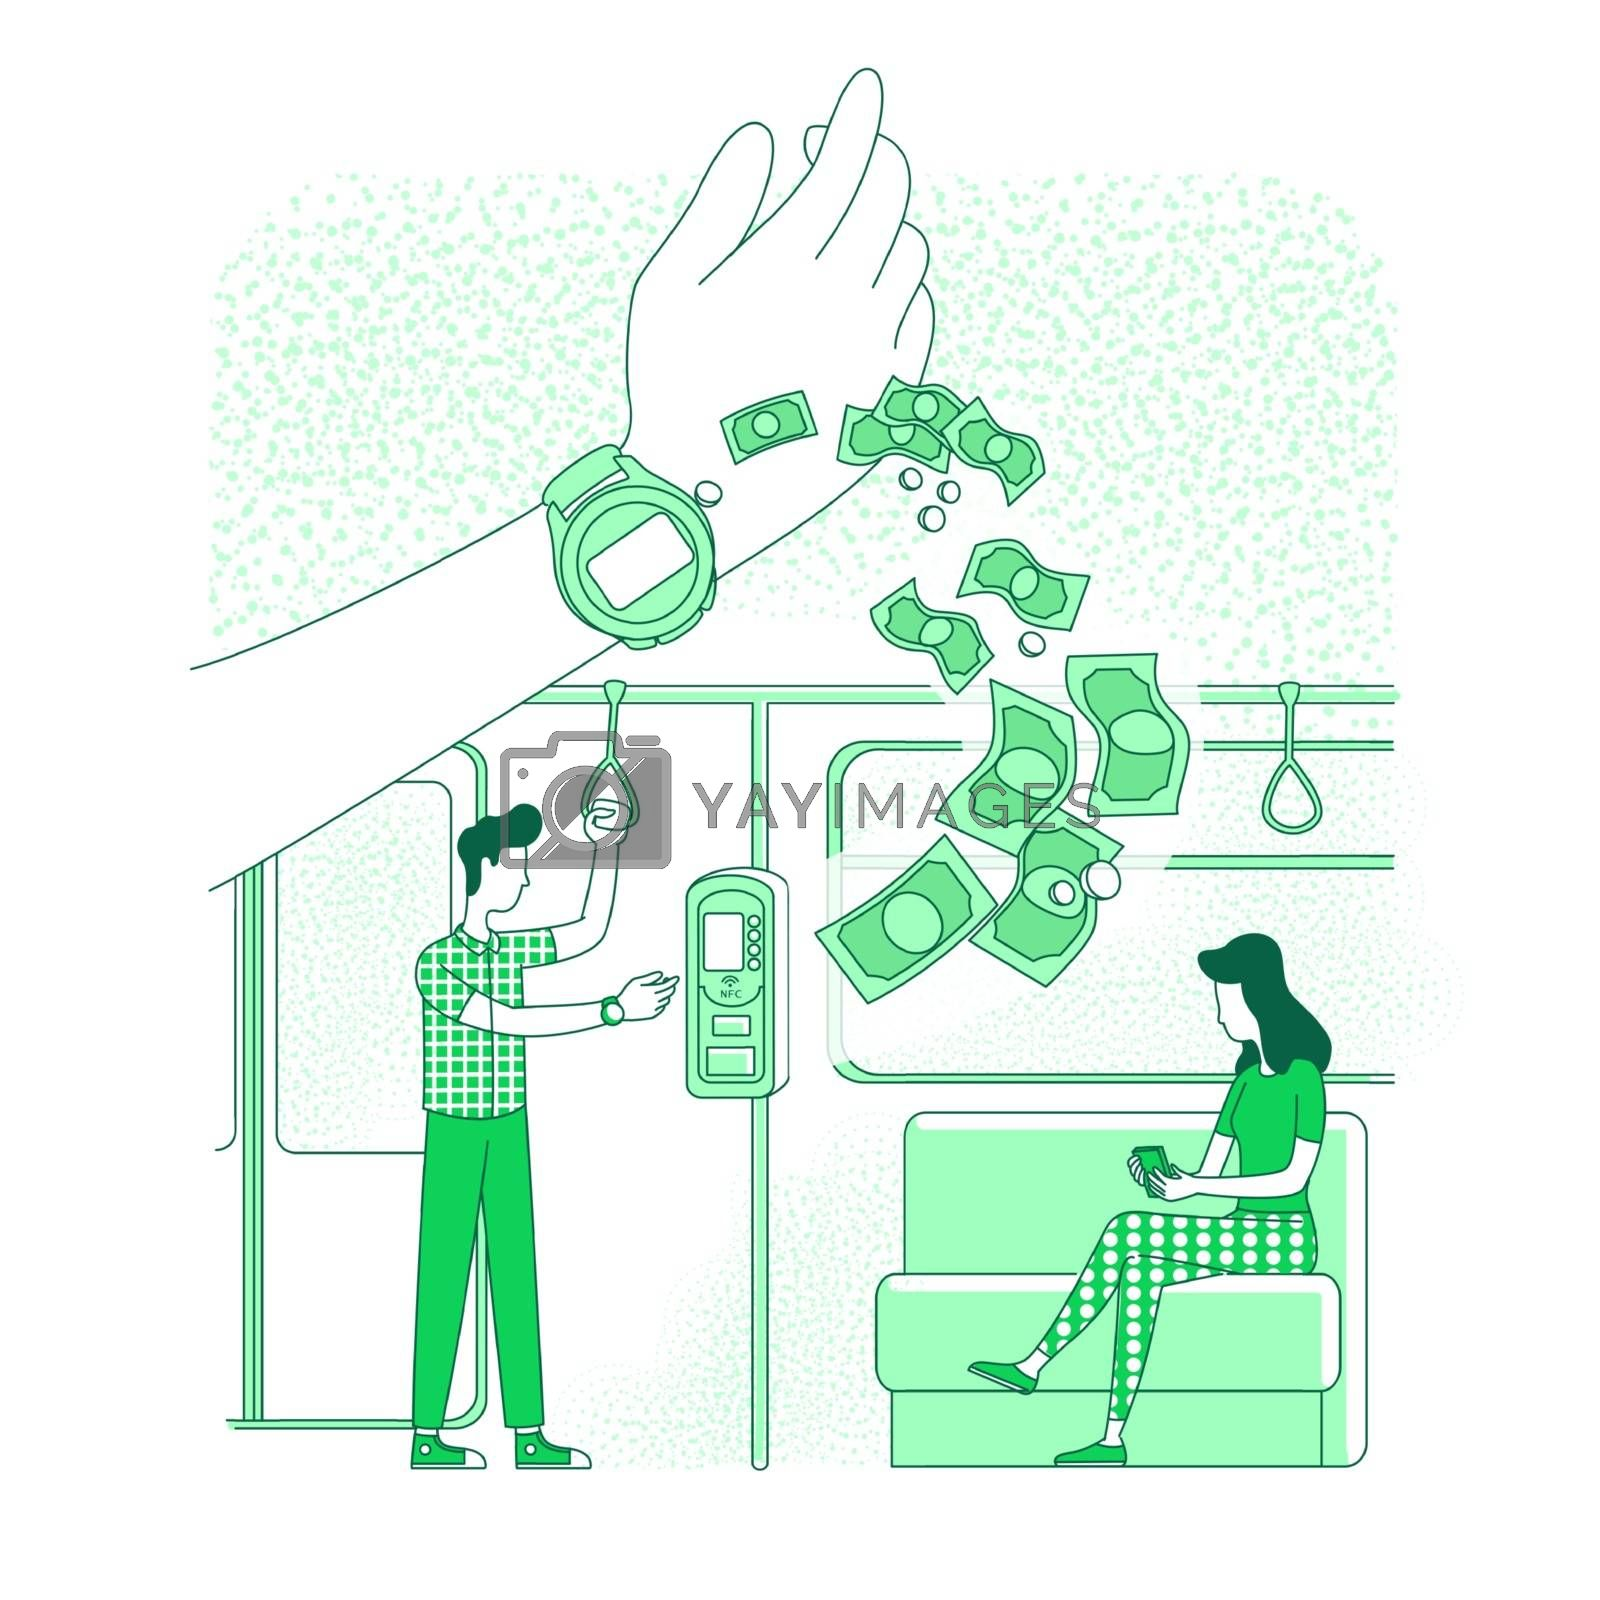 Wearable device, smart clock thin line concept vector illustration. Metro passengers, people buying e-tickets 2D cartoon characters for web design. RFID tech, cashless payment service creative idea